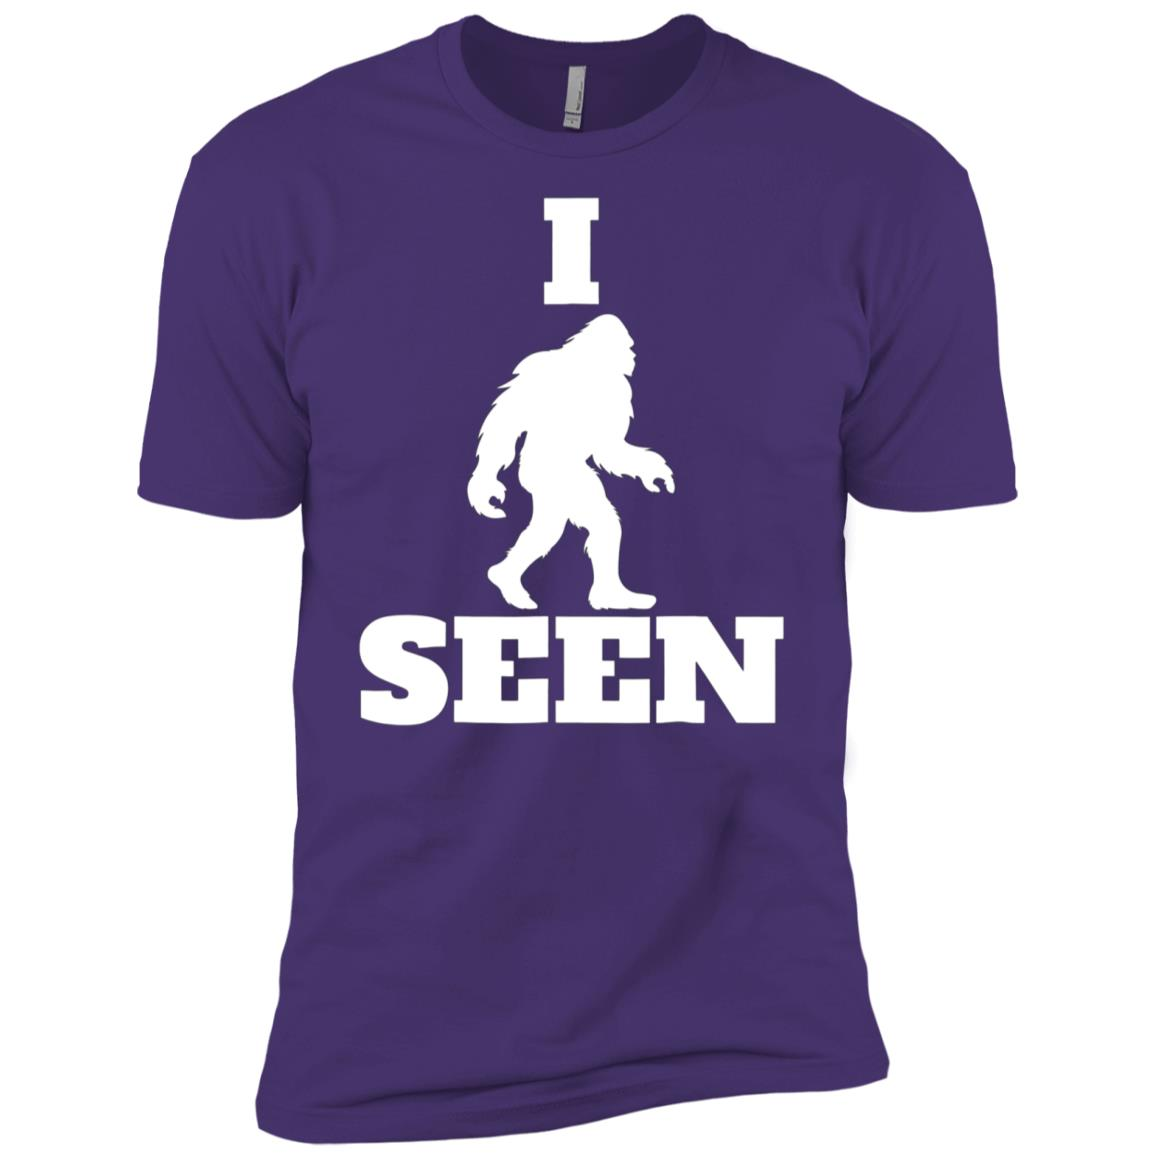 I Seen Bigfoot Bigfoot Believer Sasquatch Yeti Tee-1 Men Short Sleeve T-Shirt